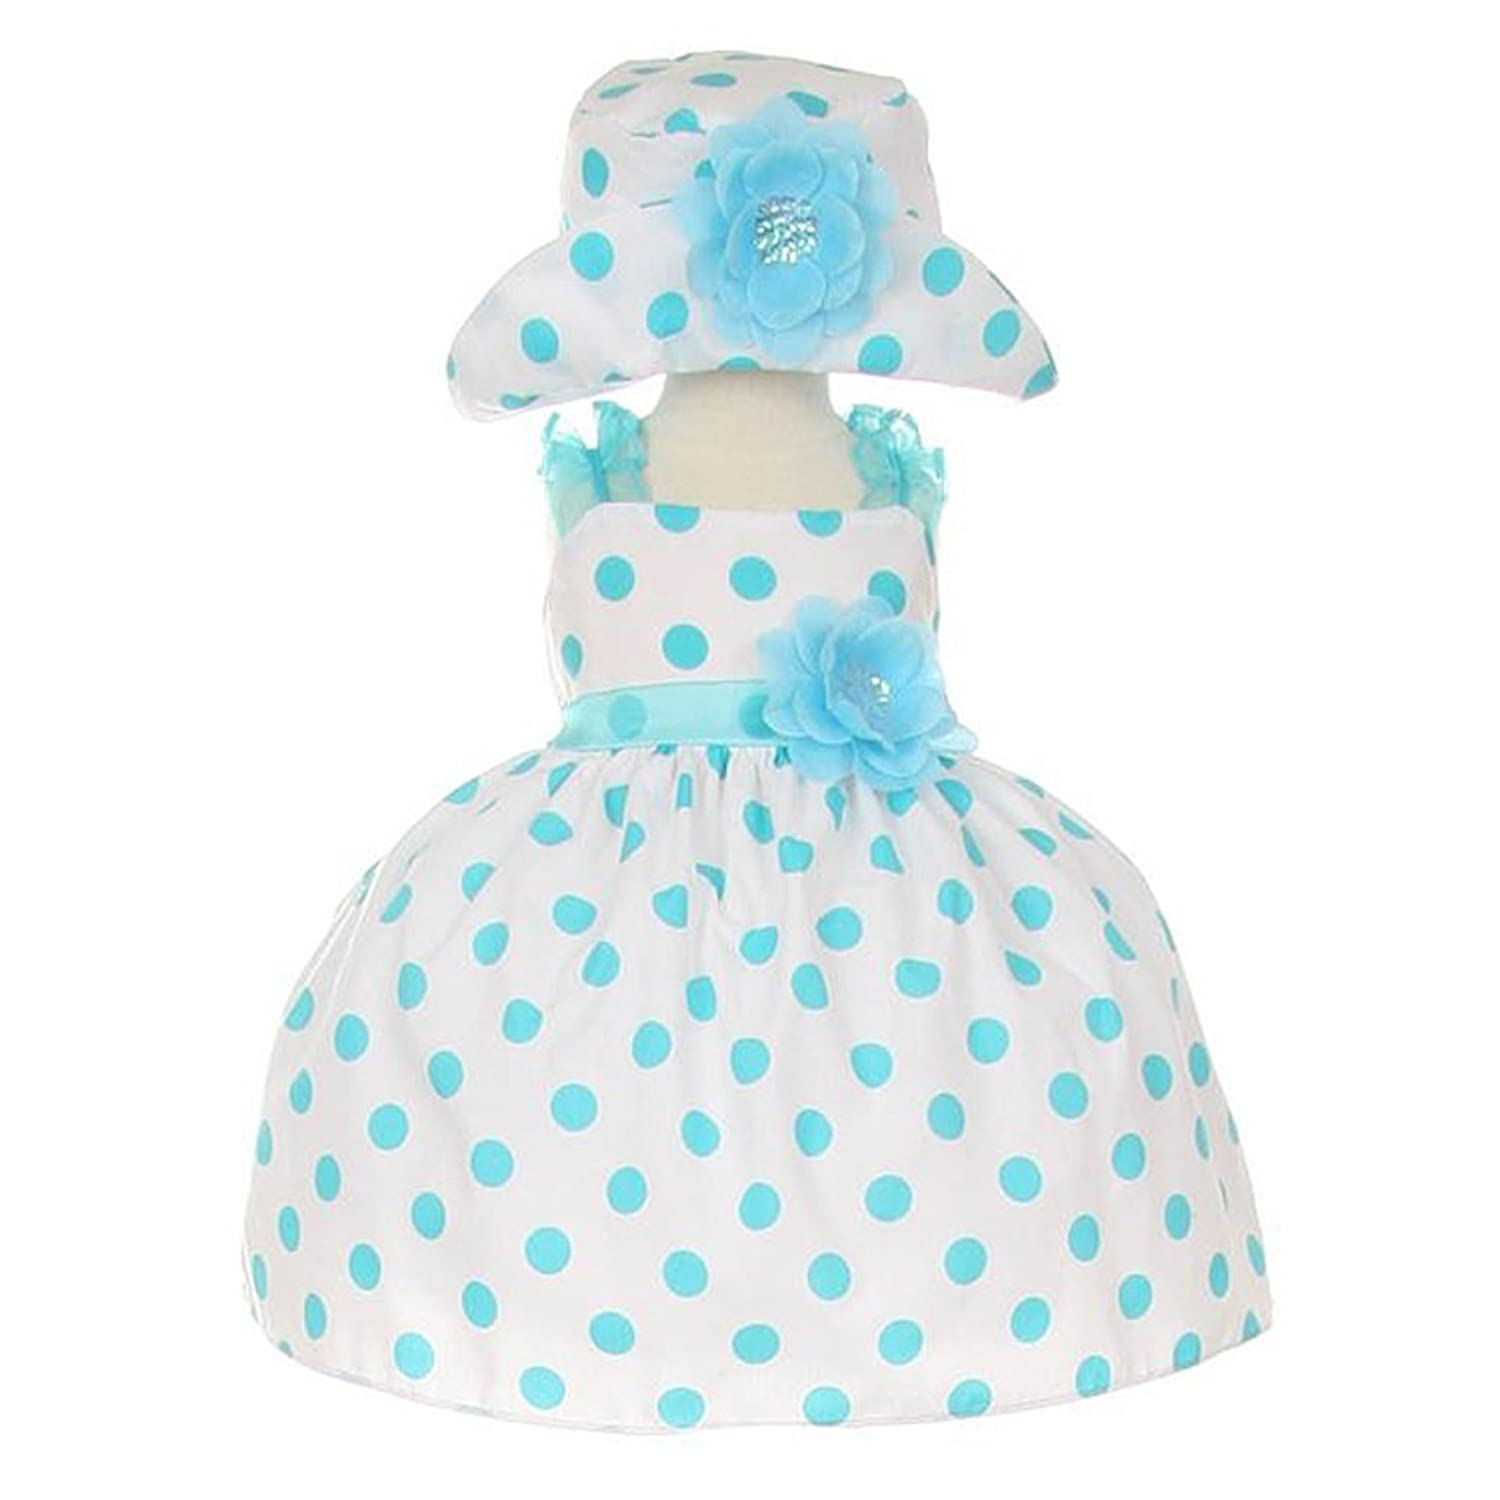 Amazon.com: Infant-Toddler Aqua Polka Dot Party Dress with Hat: Clothing